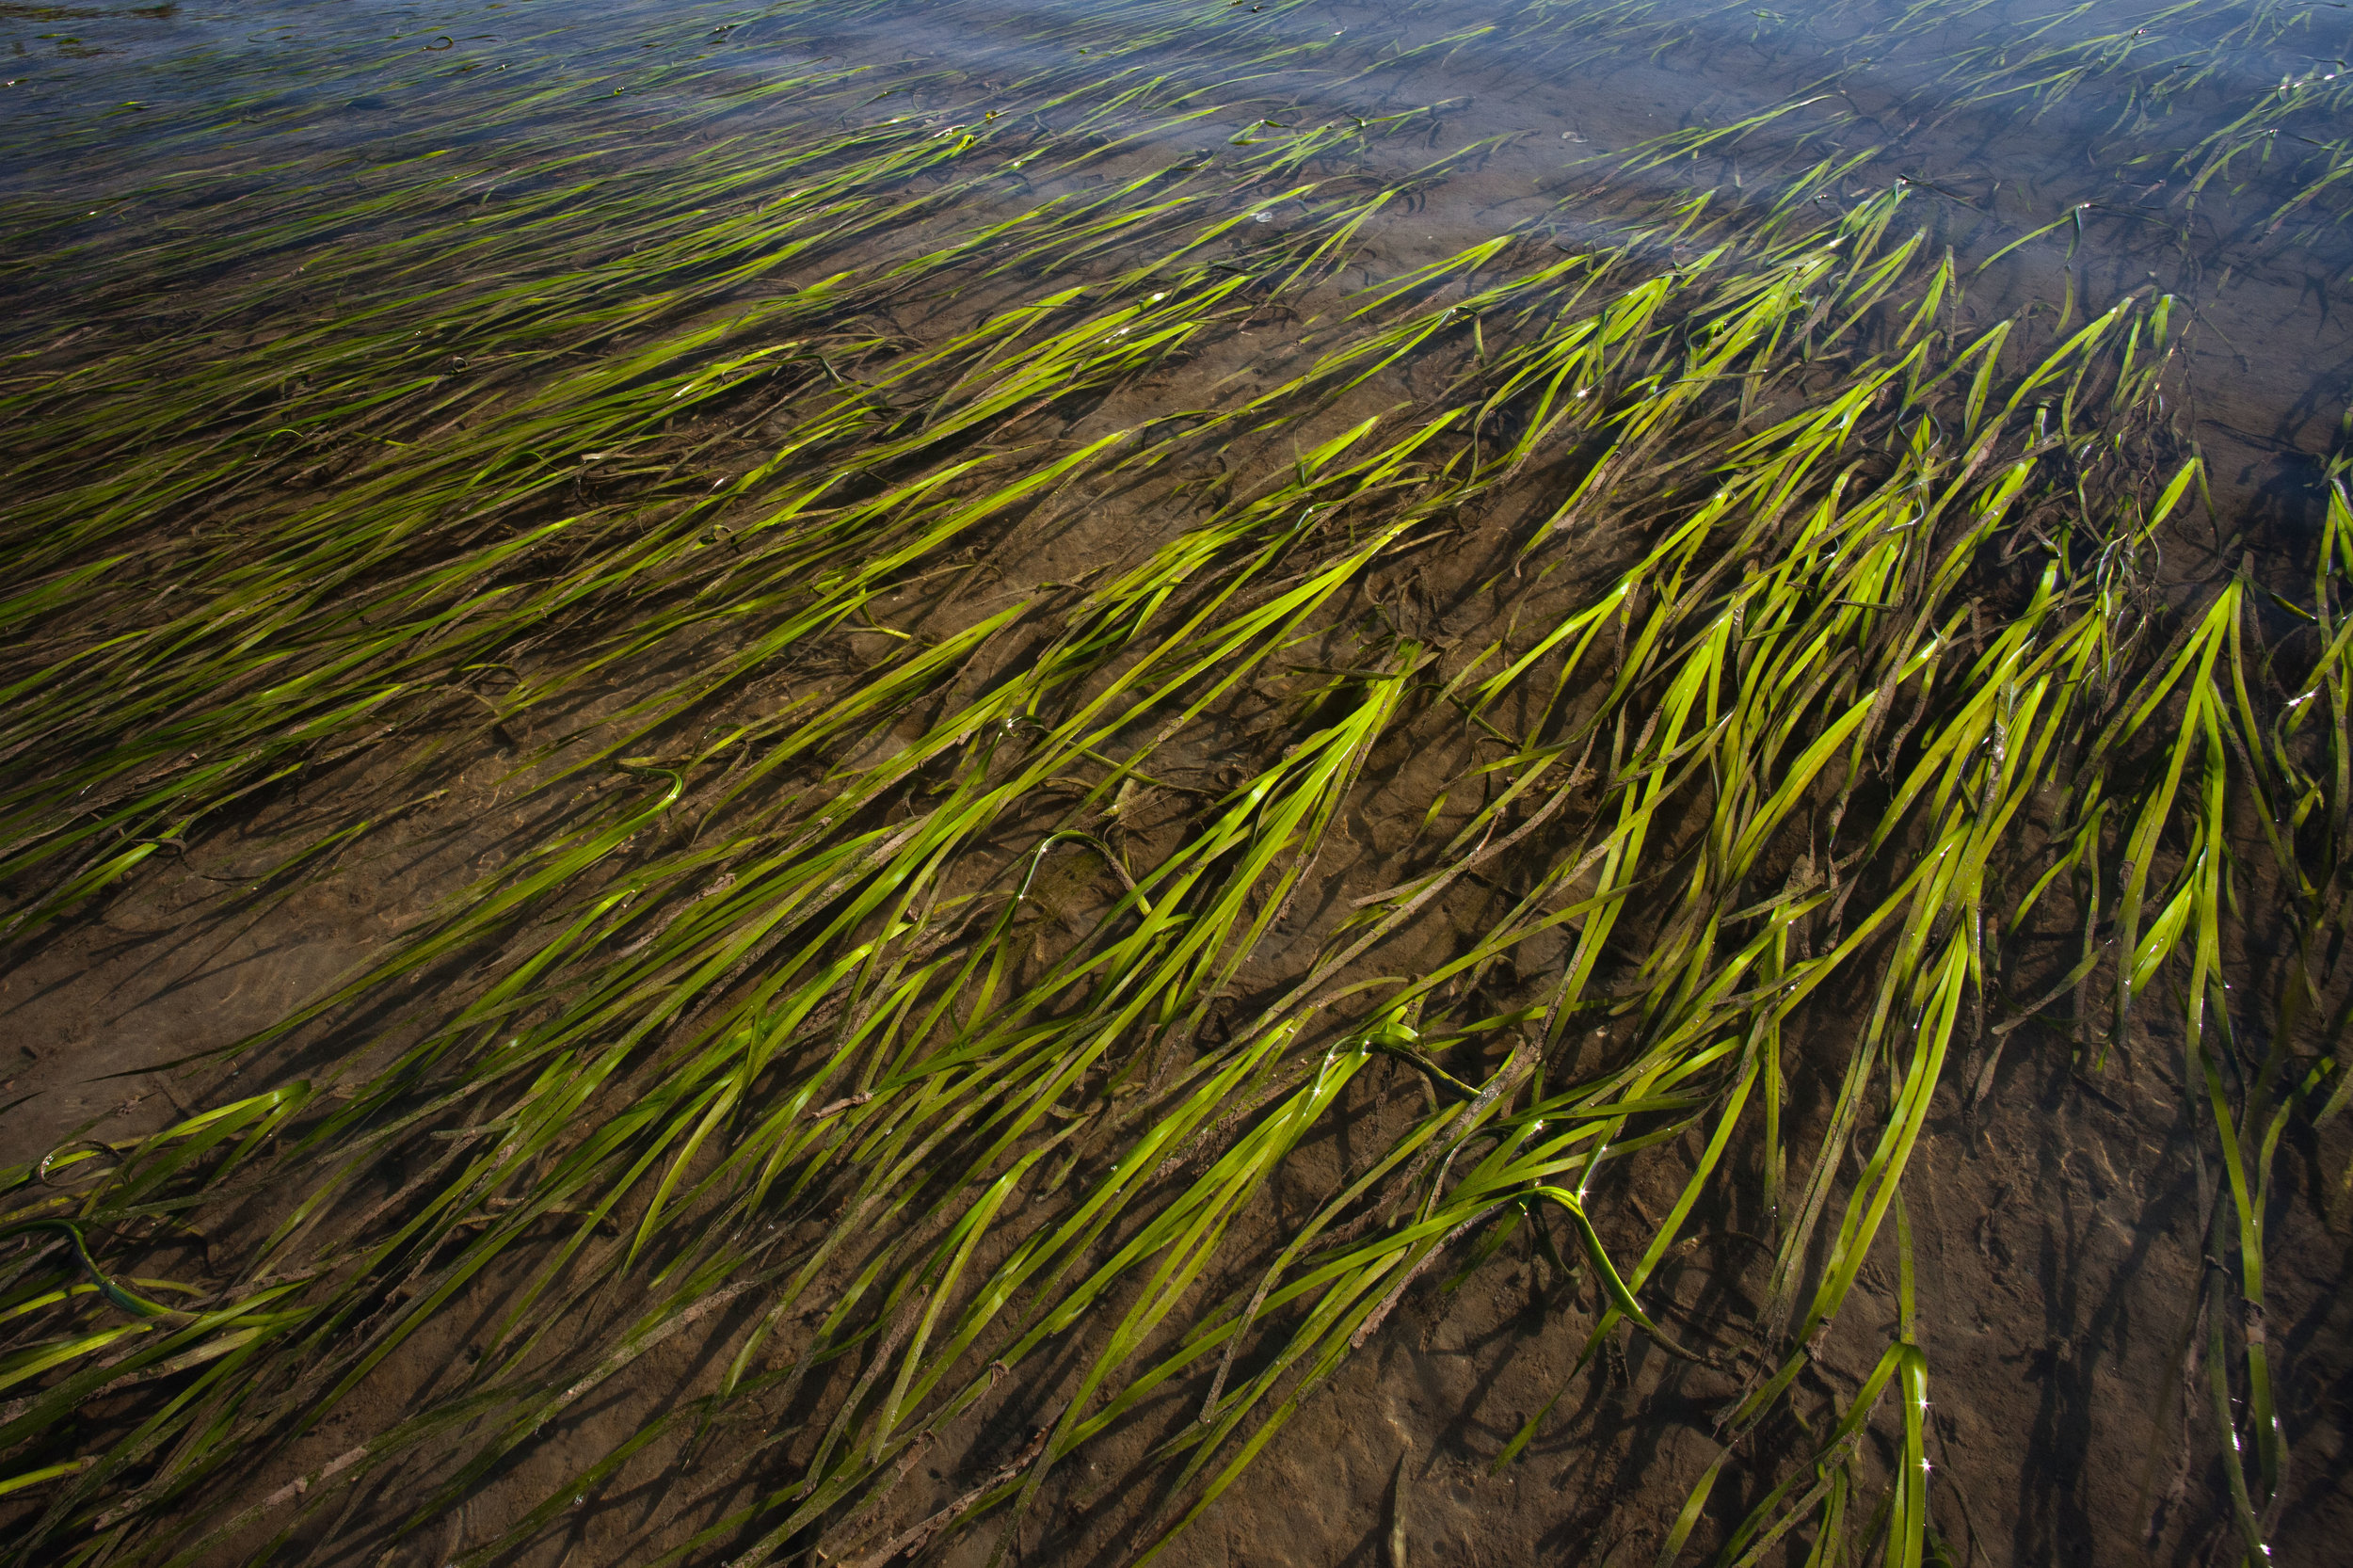 Through clear water, eelgrass can be seen anchored on the muddy shores of Barnum Point. Photo by Benj Drummond.